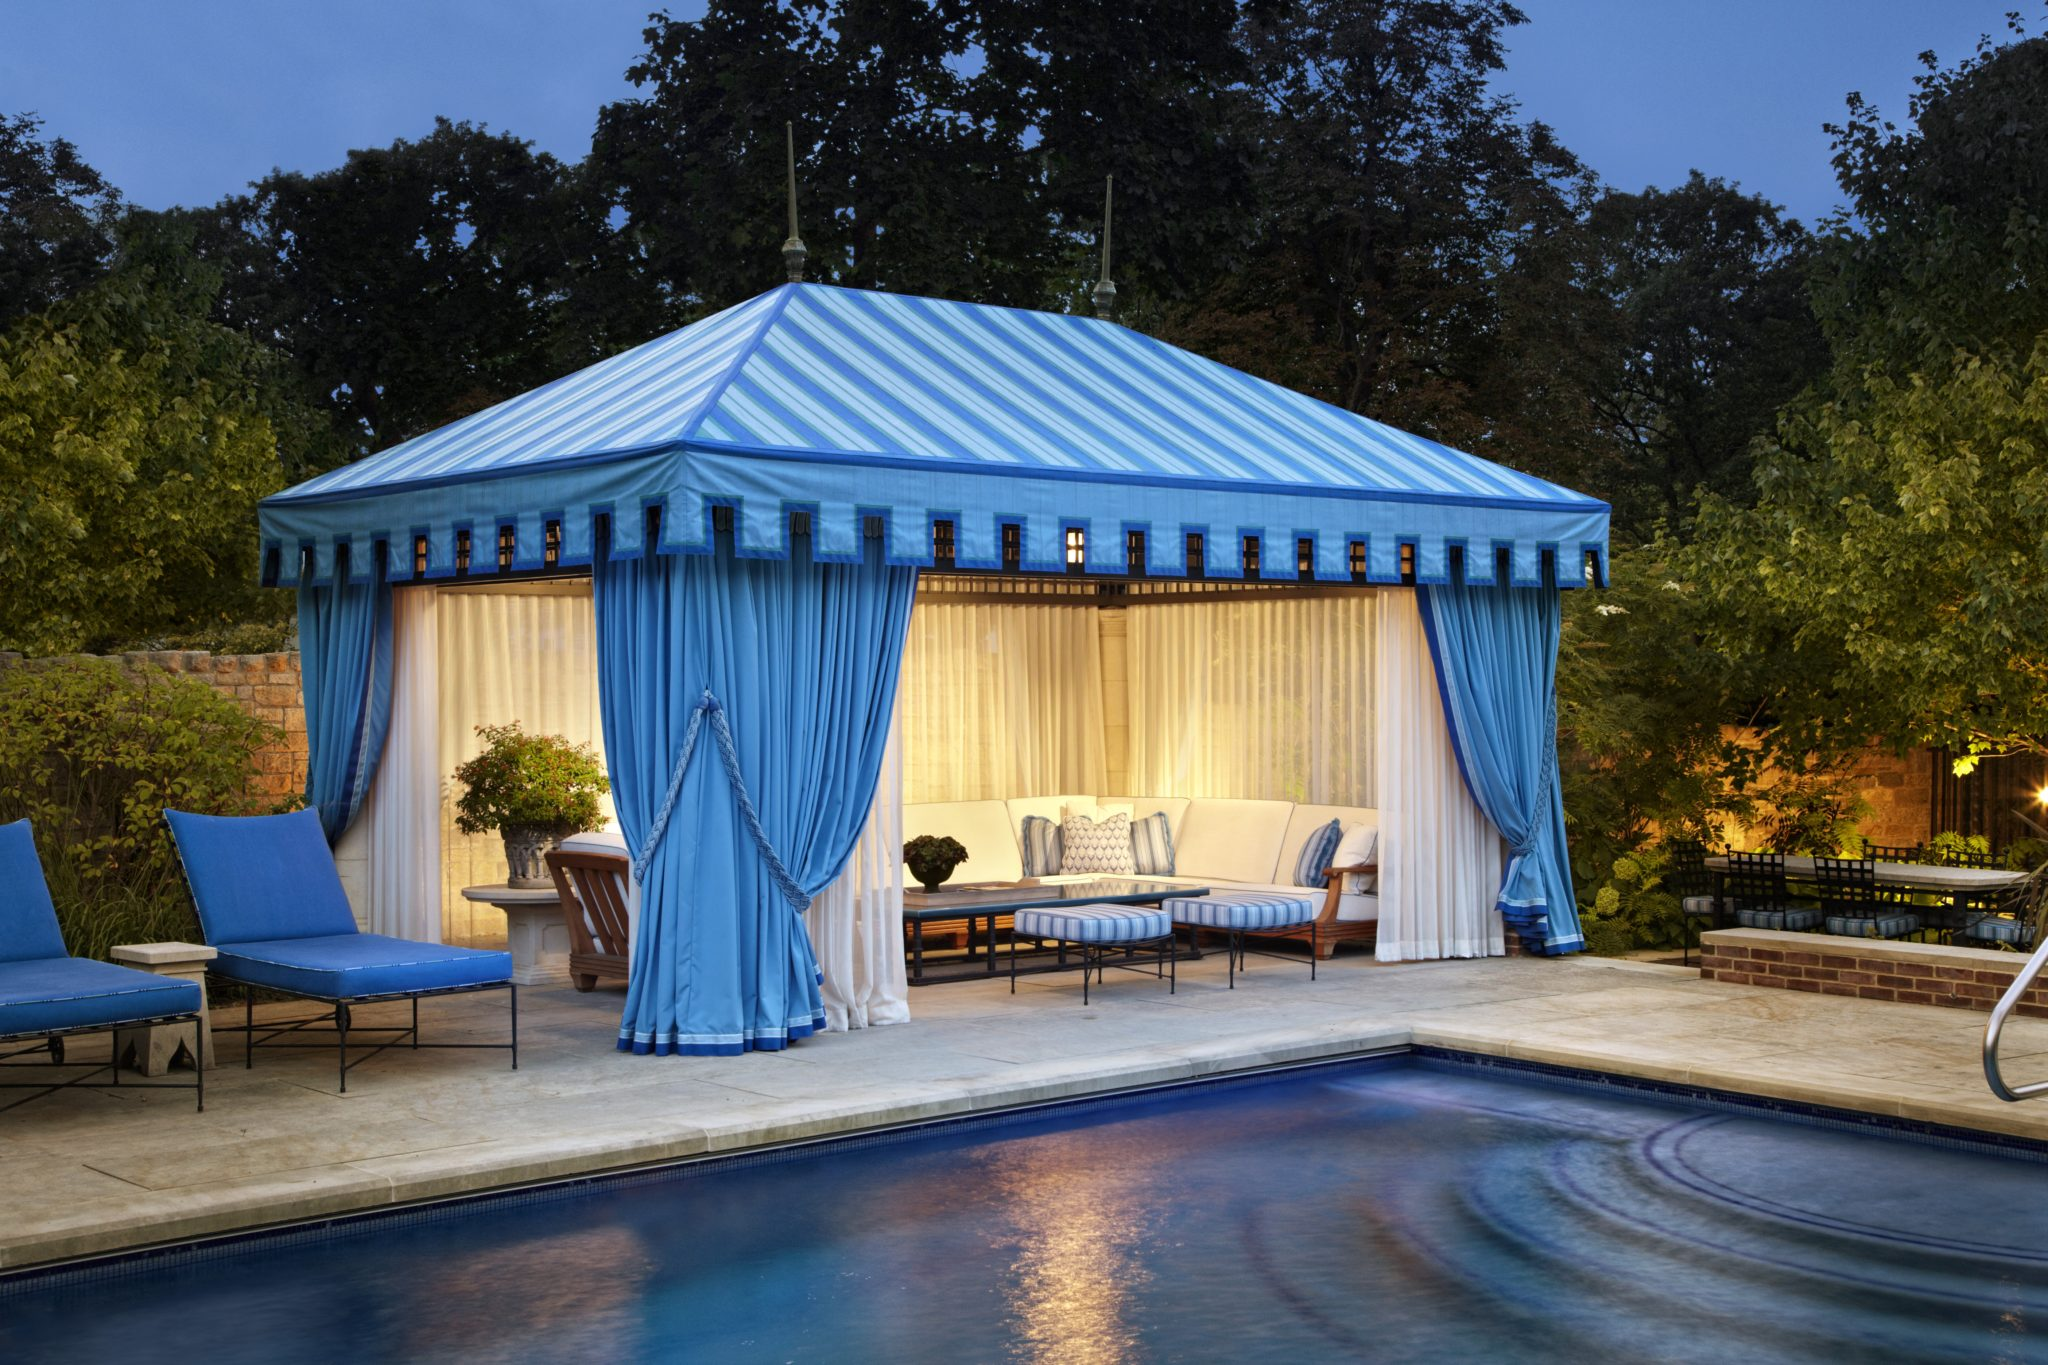 Tented poolhouse by Bruce Fox